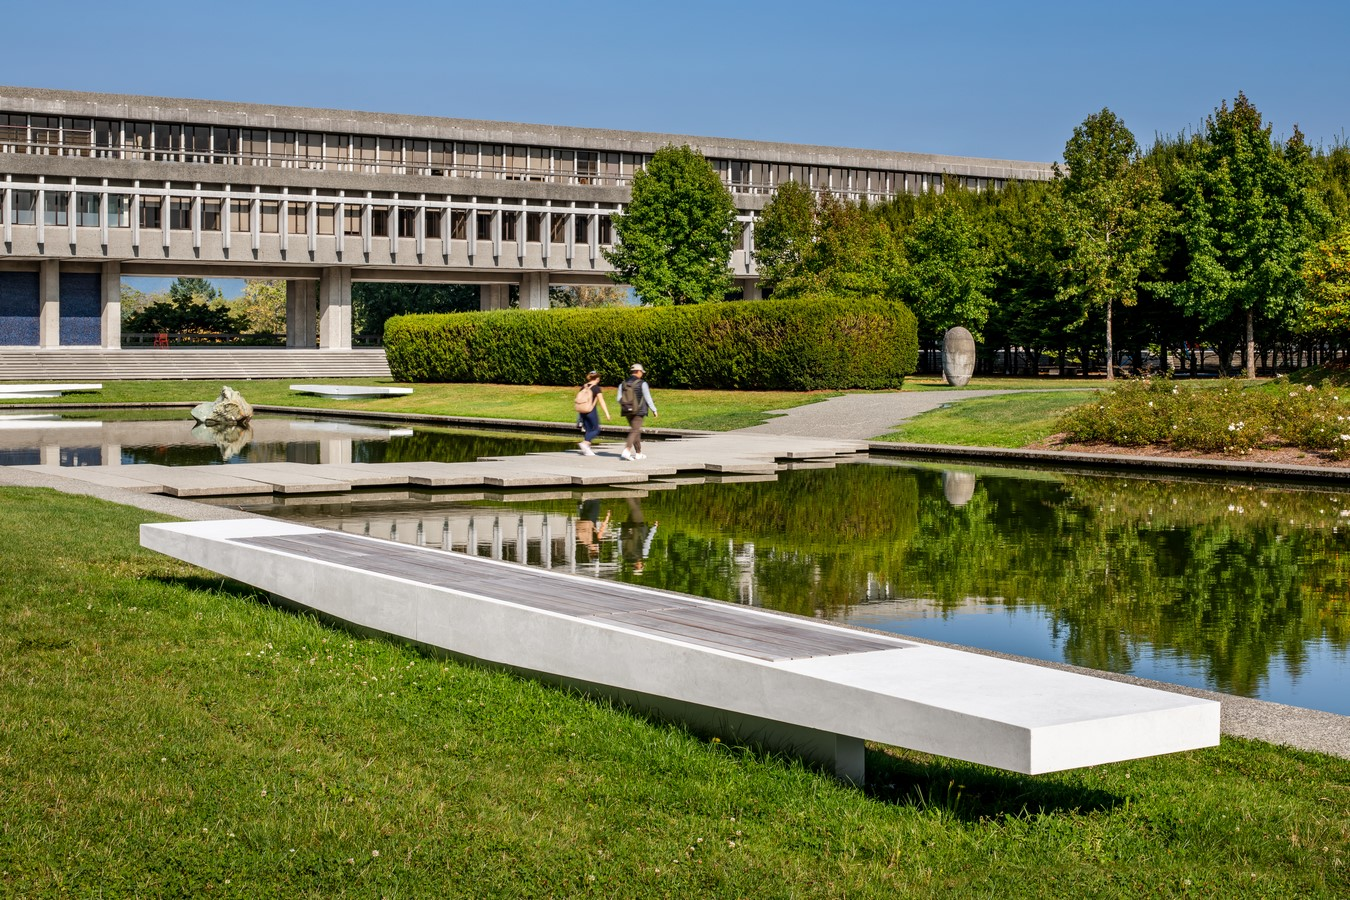 Built in 1965, the Erickson / Massey Simon Fraser University Campus is among the most significant pieces of Canadian architecture. The Plaza serves a double function: as an open-air public space and as a roof sheltering education spaces beneath.: Sheet 2